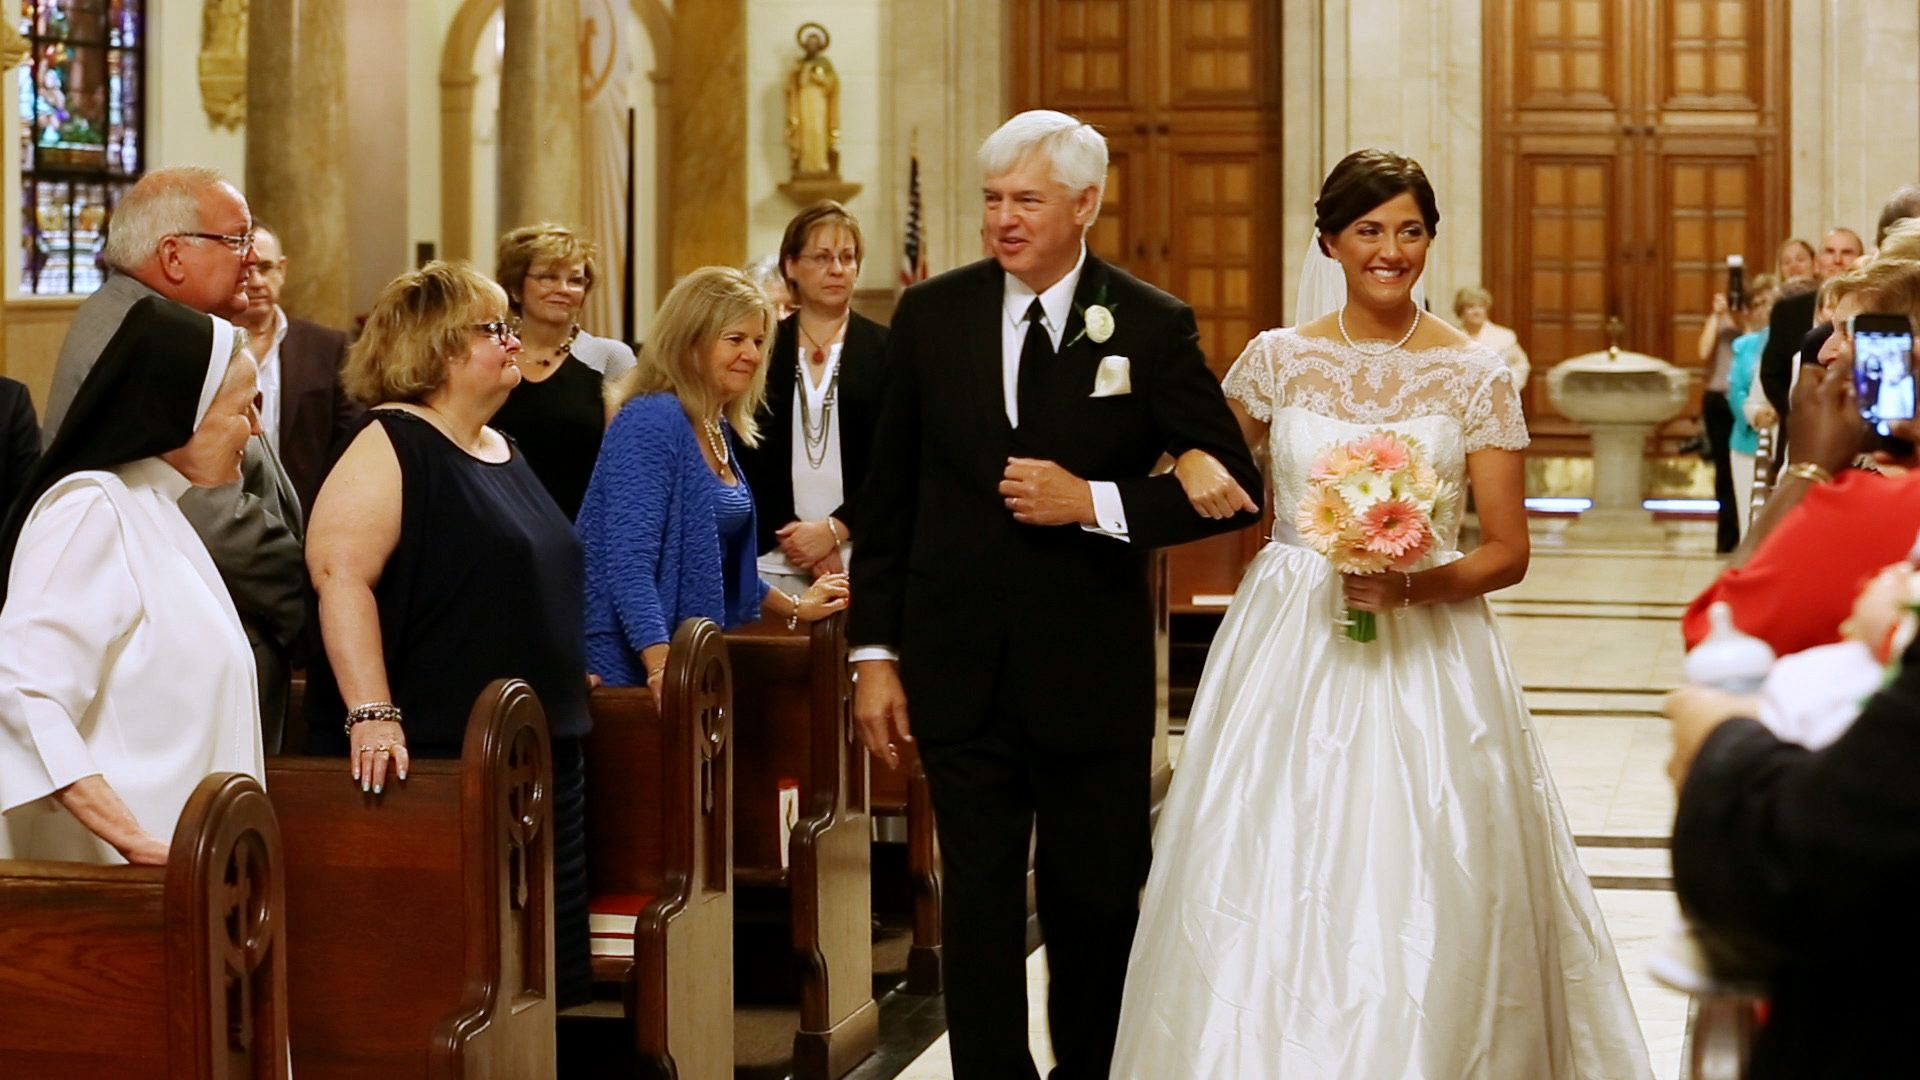 Nothing but smiles as Beth walks down the aisle!